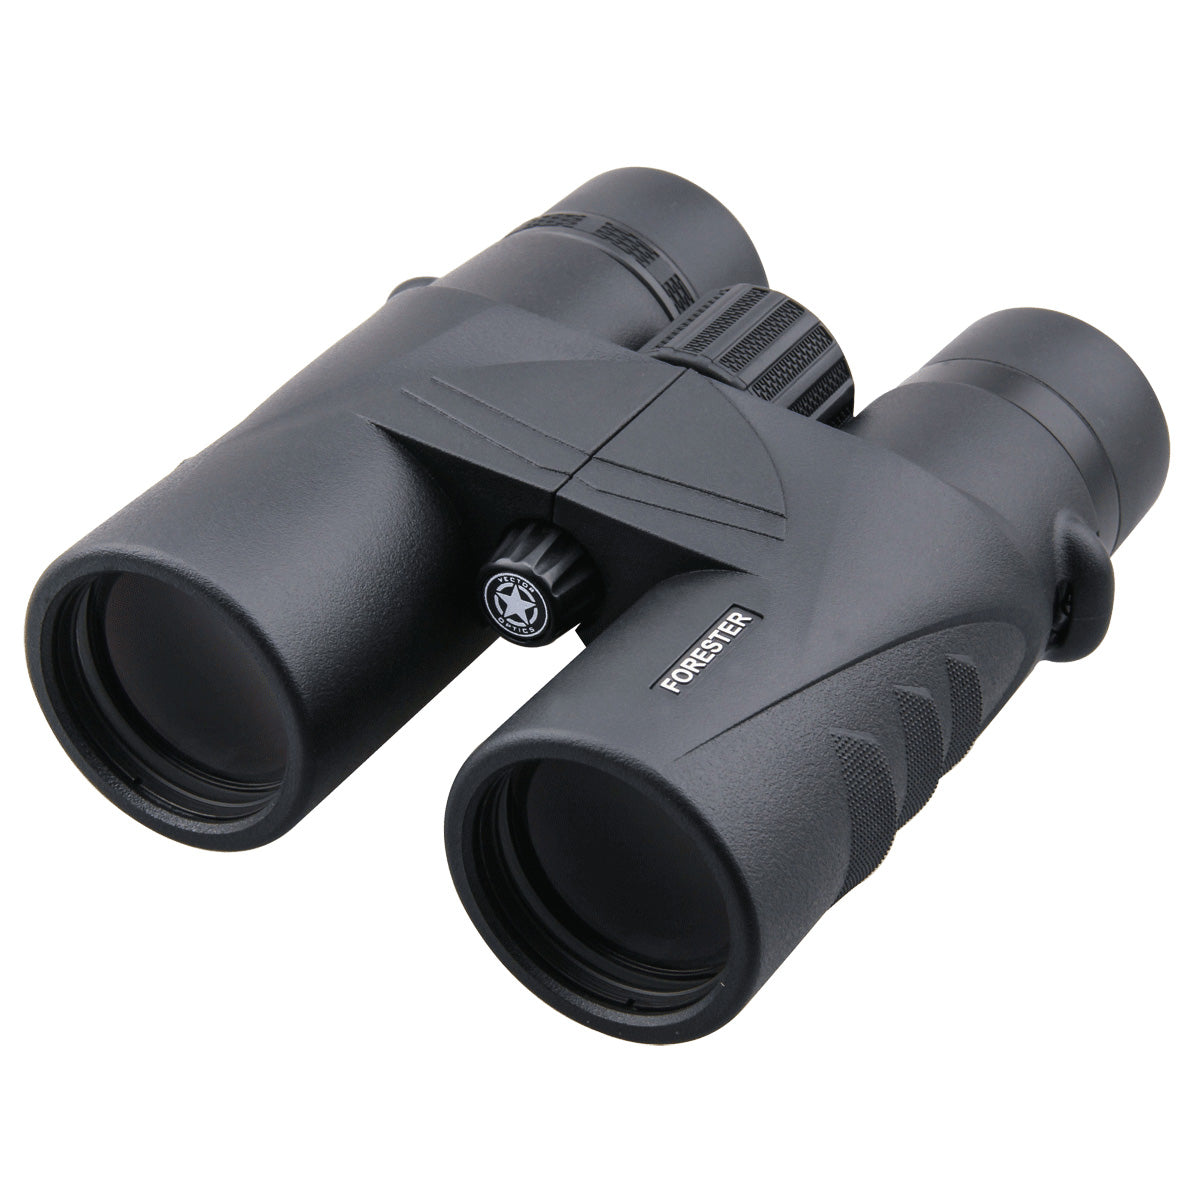 Vector Optics Forester 10x42 Binocular Tactical scope Hunting Sight Water proof 4 Groups 6 Lens Silver Coated Prism for Shooting